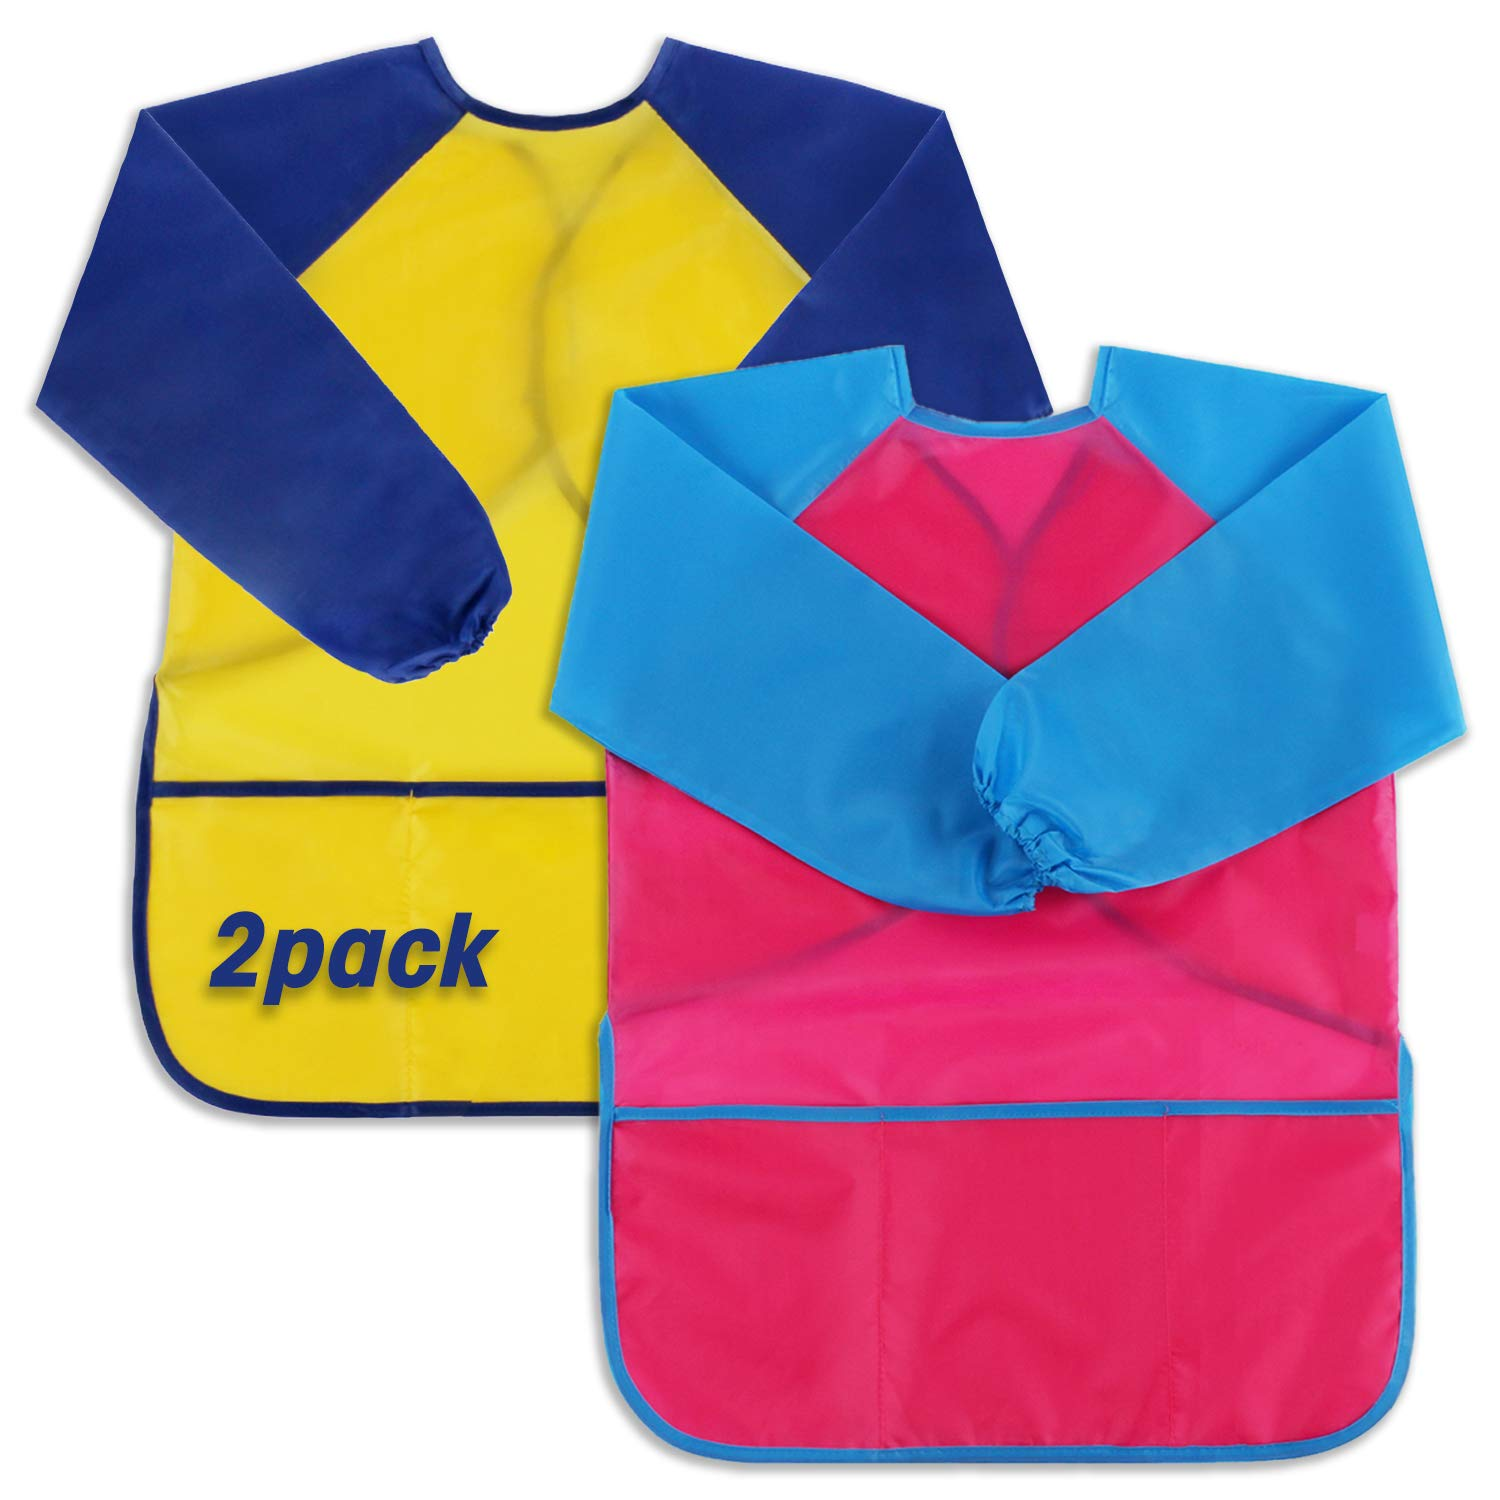 Scotamalone Kids Aprons, Art Smocks, 2 Pack, Children Waterproof Artist Painting Aprons Long Sleeve with 3 Pockets for Age 2-6 Years